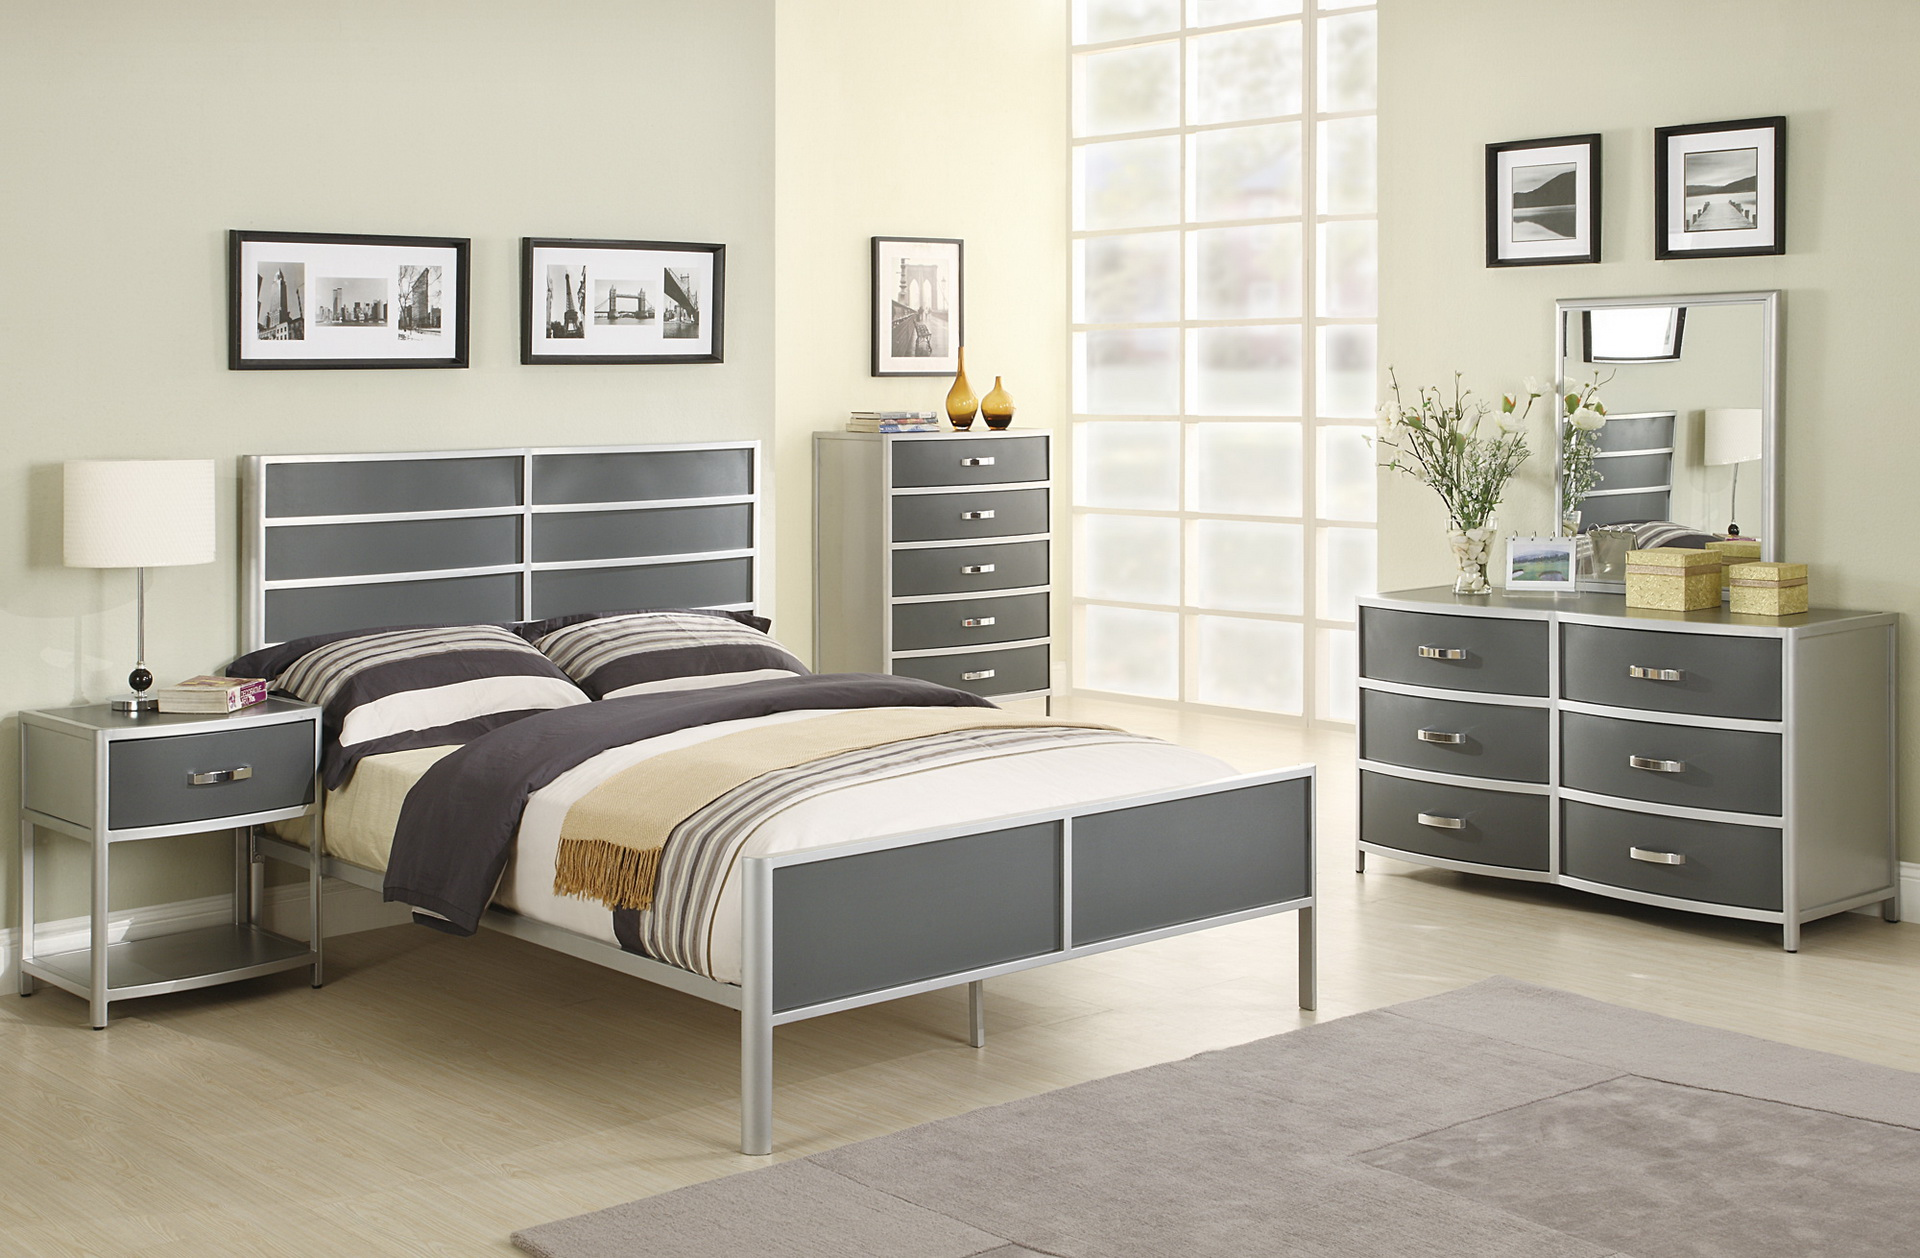 silver bedroom furniture sets reflect a clean and 13152 | silver bedroom furniture sets photo 8